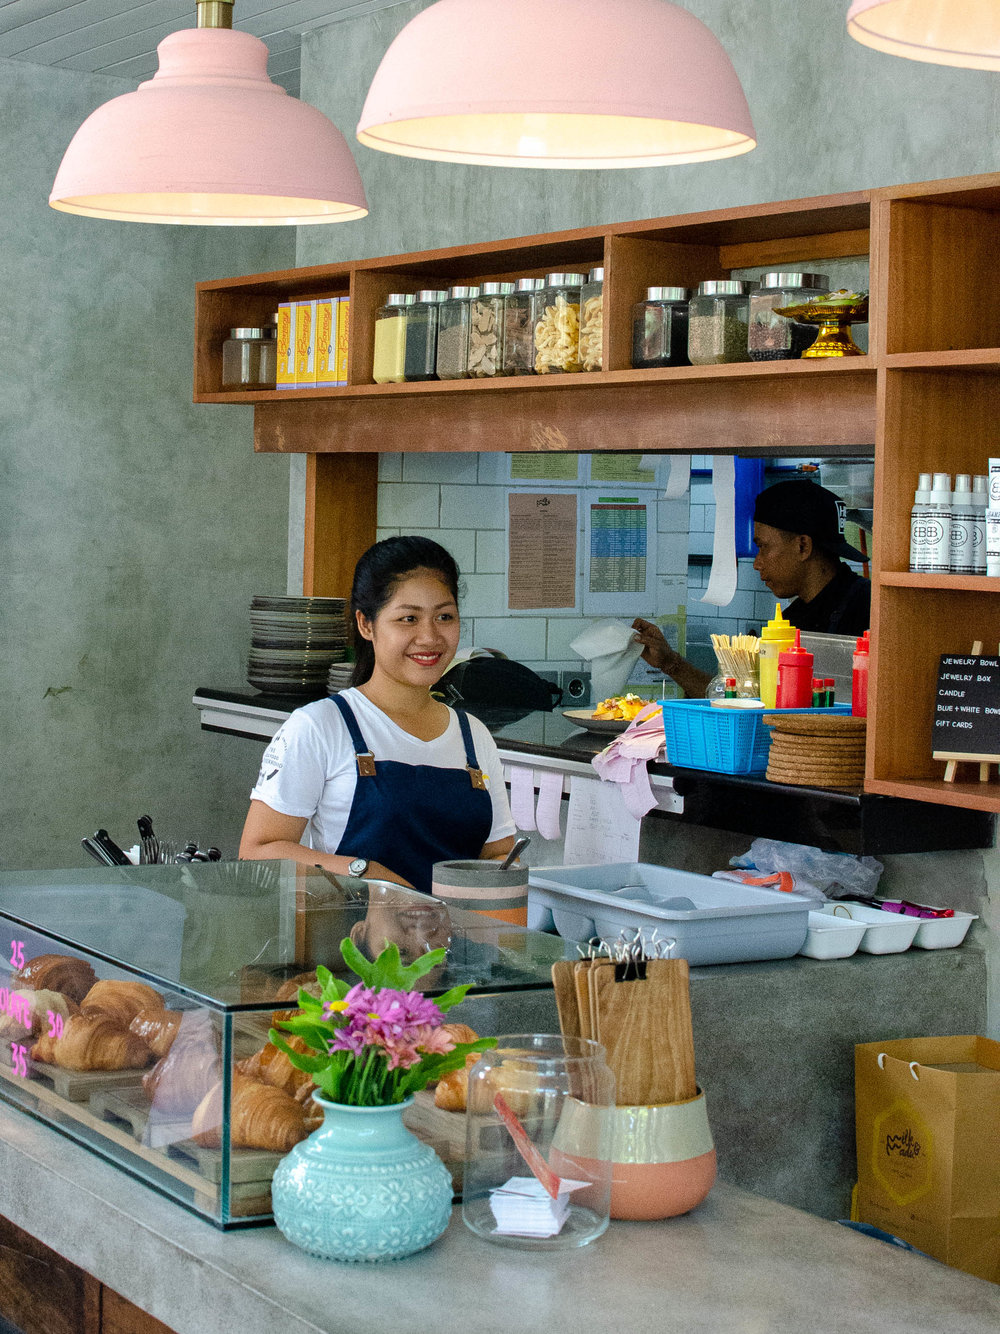 7 Cafes in Canggu for Foodies, Instagrammers, and Digital Nomads